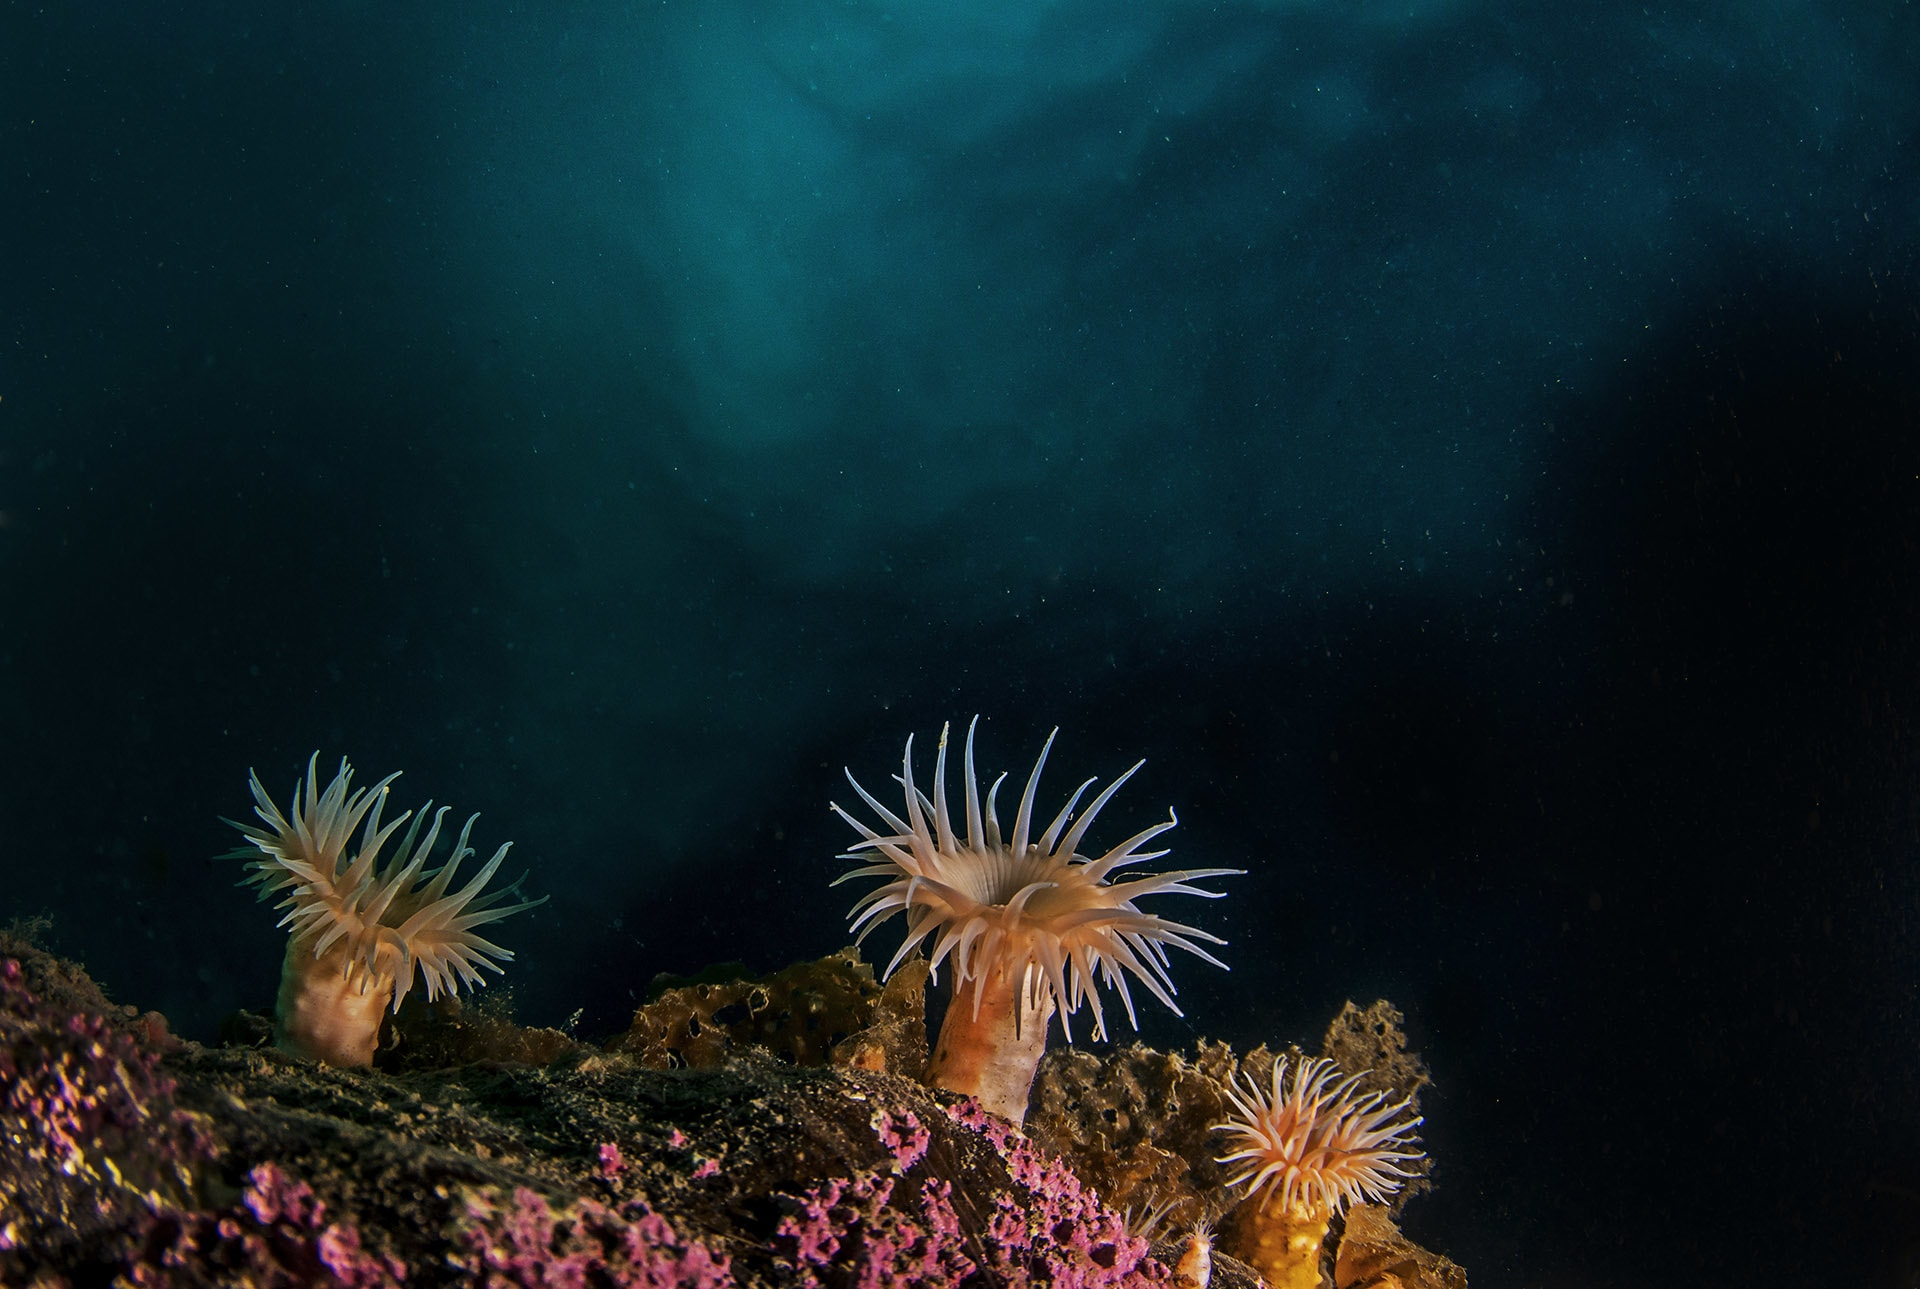 Farther down, in areas free of iceberg disturbance, corals and anemones add daubs of colour to the inky palette. Contrary to popular belief, the Arctic Ocean floor supports a healthy diversity of marine life, ranging from nudibranchs, sea snails, and sea slugs, to species of shrimp and fish.